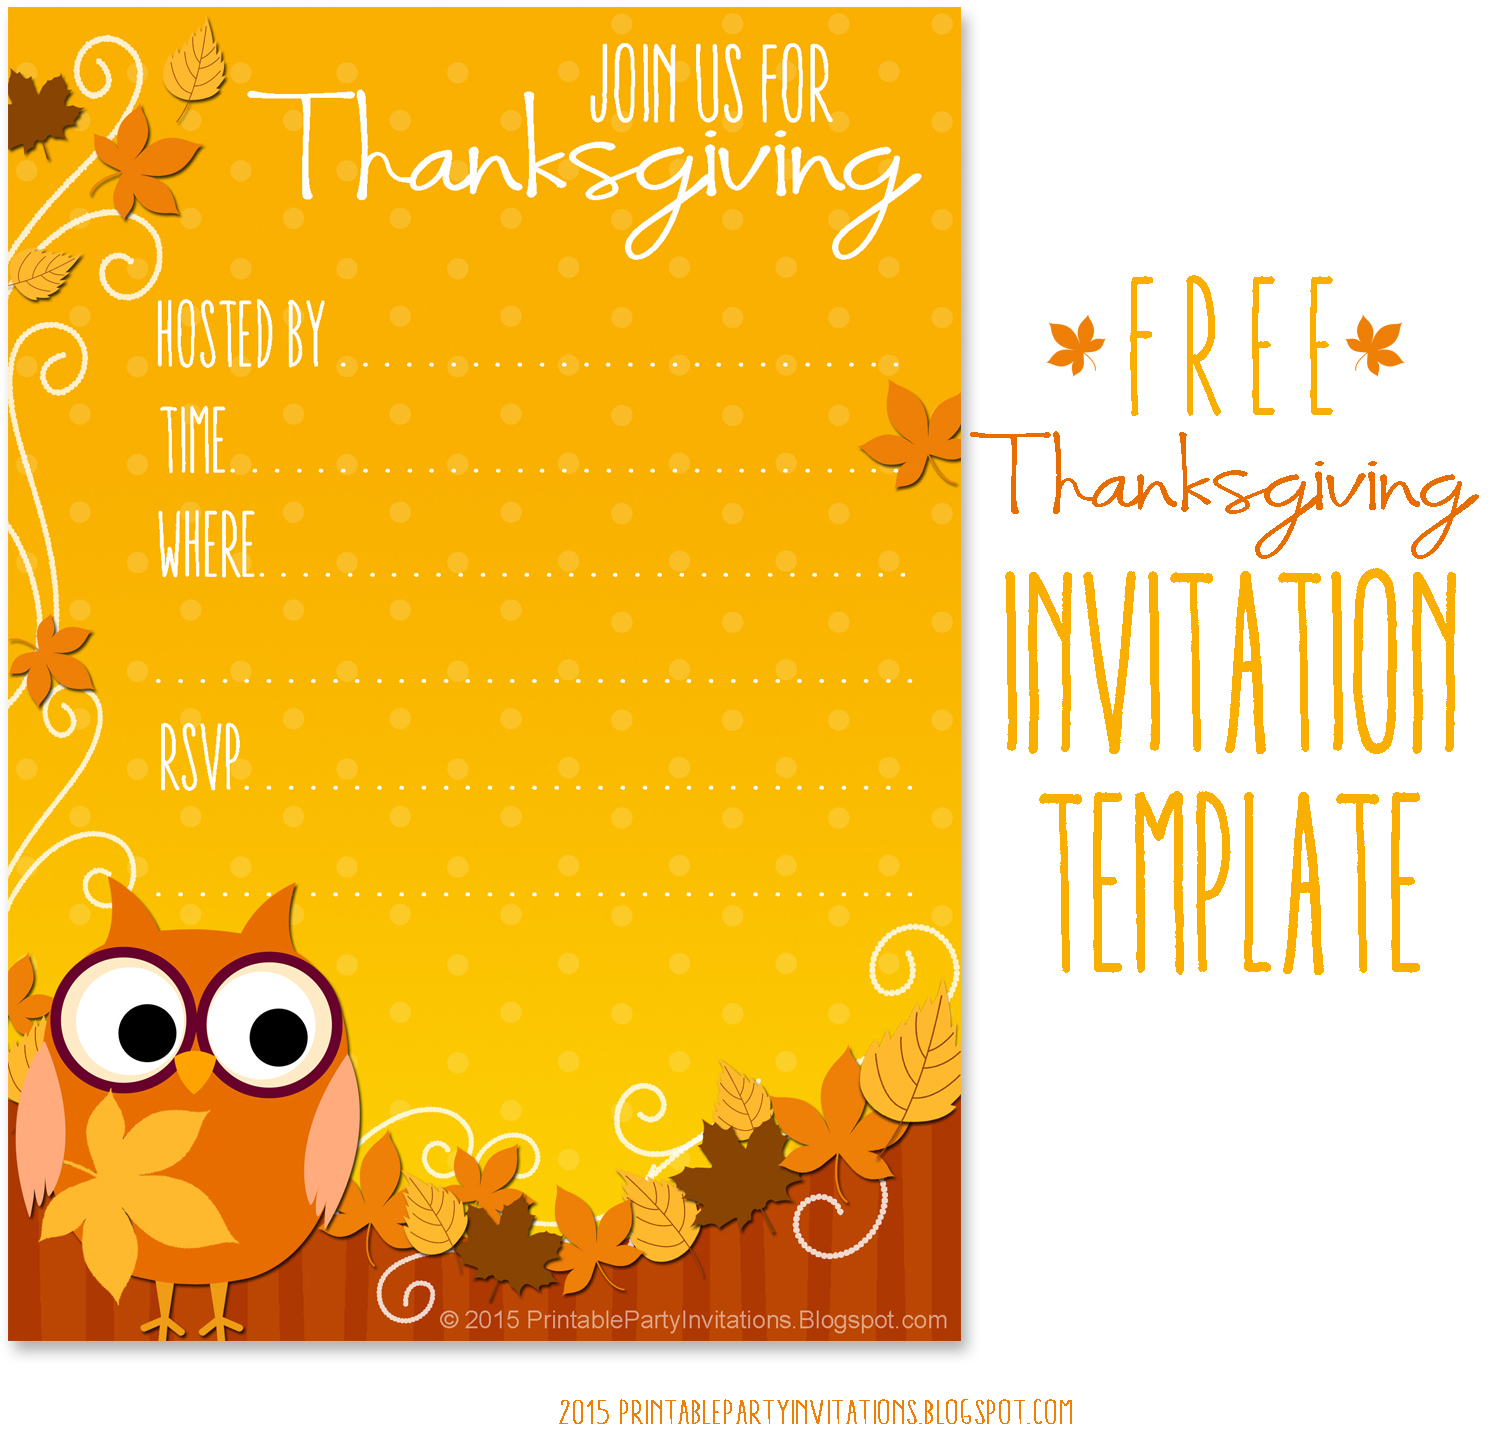 Cant Find Substitution For Tag Postbody Thanksgiving Invite